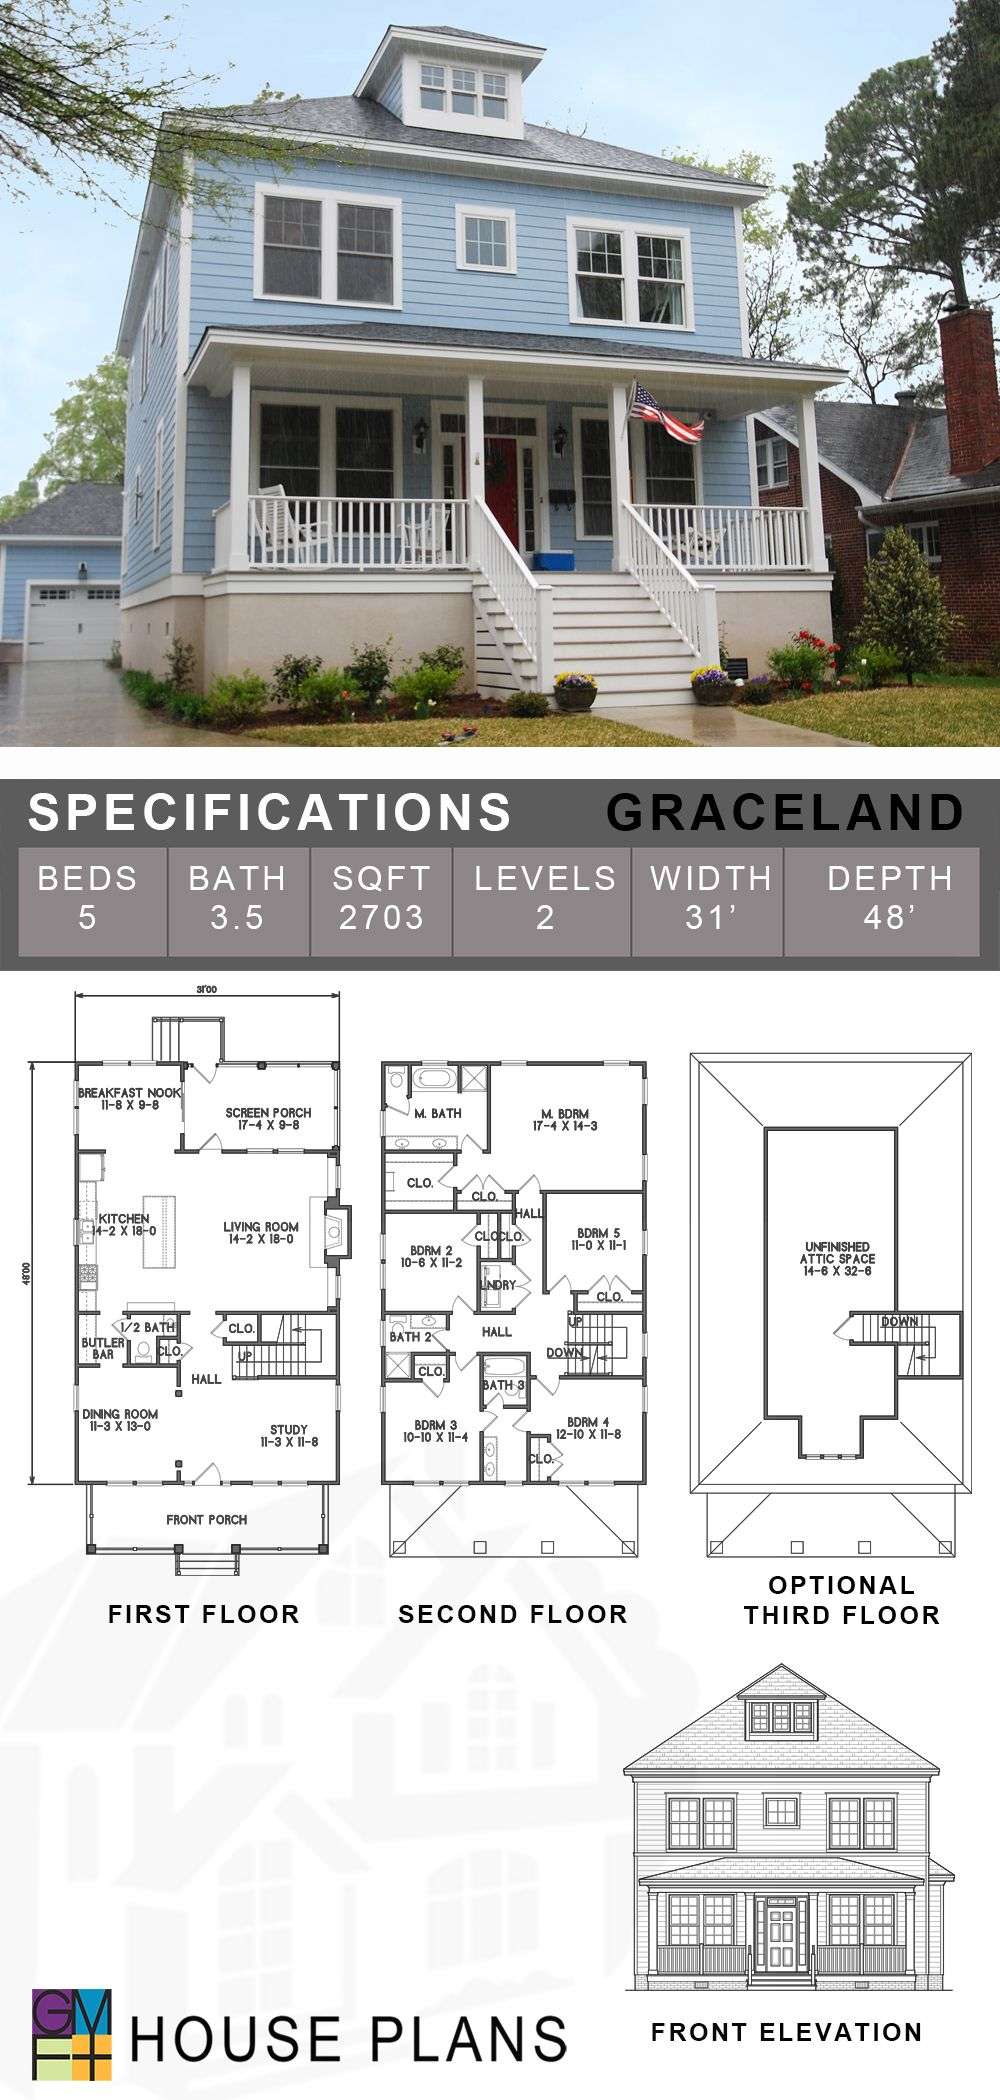 The Graceland model plan features a traditional style